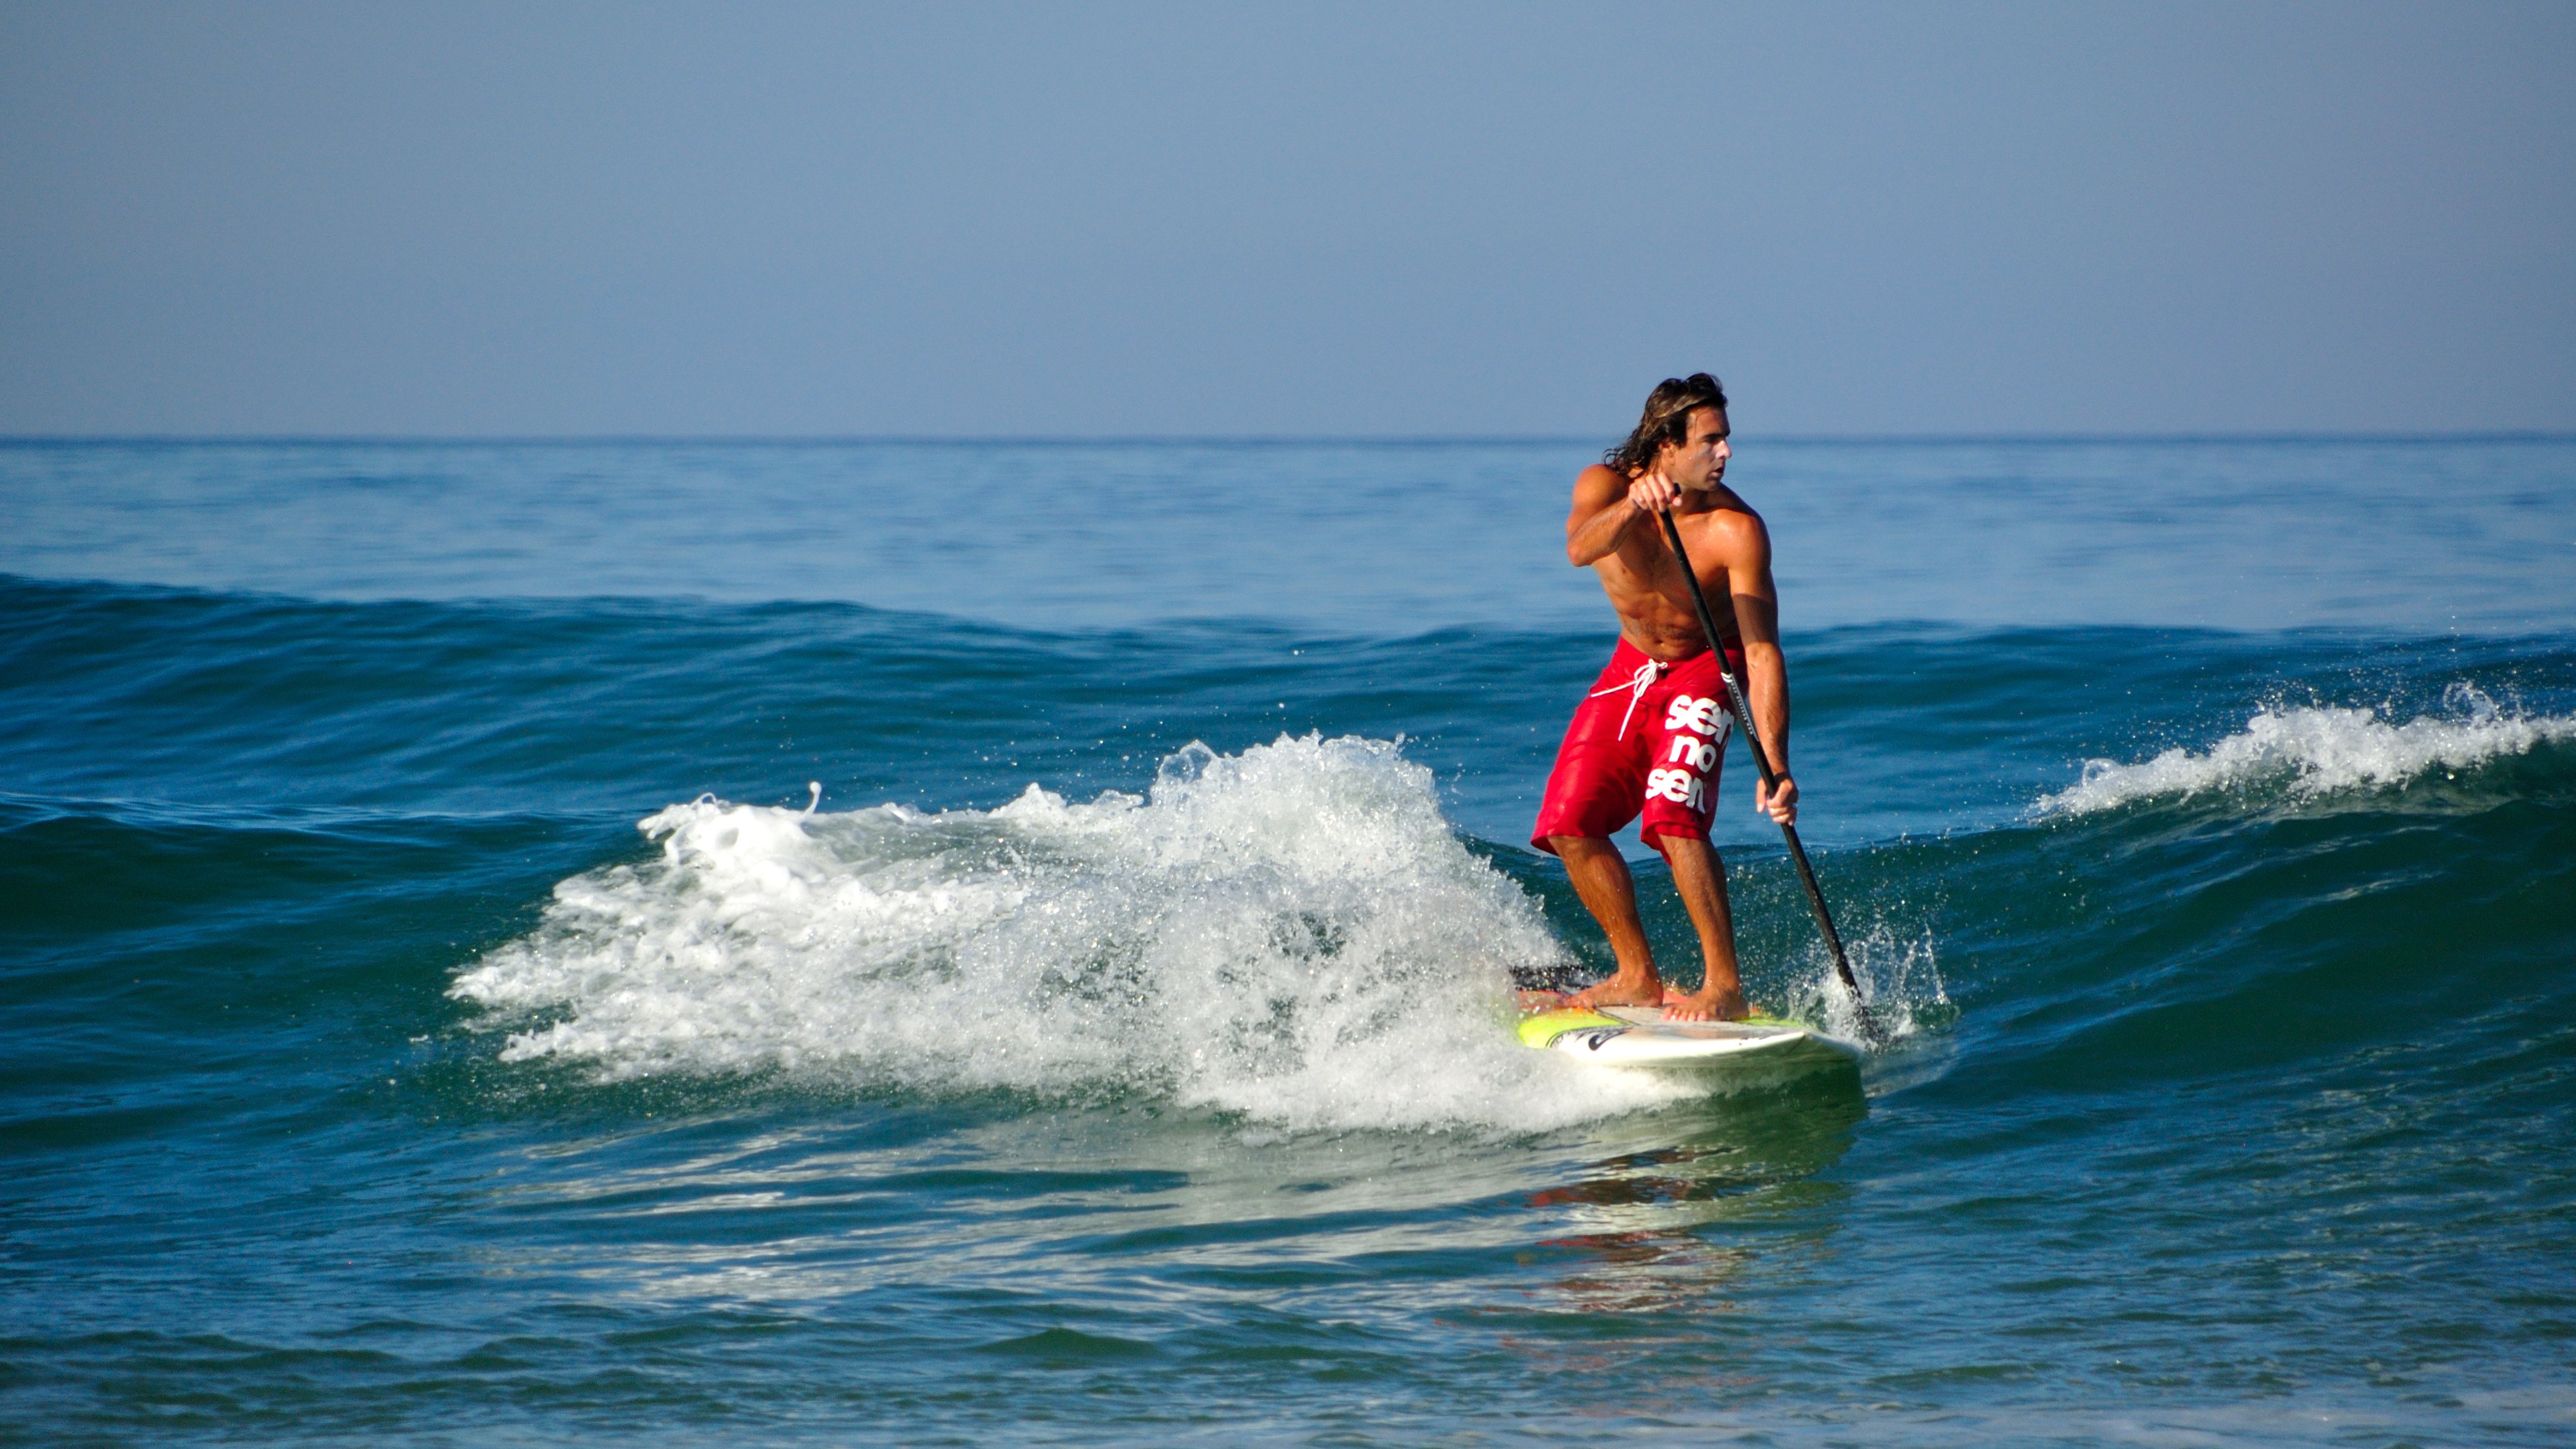 Realizar stand up paddle boarding